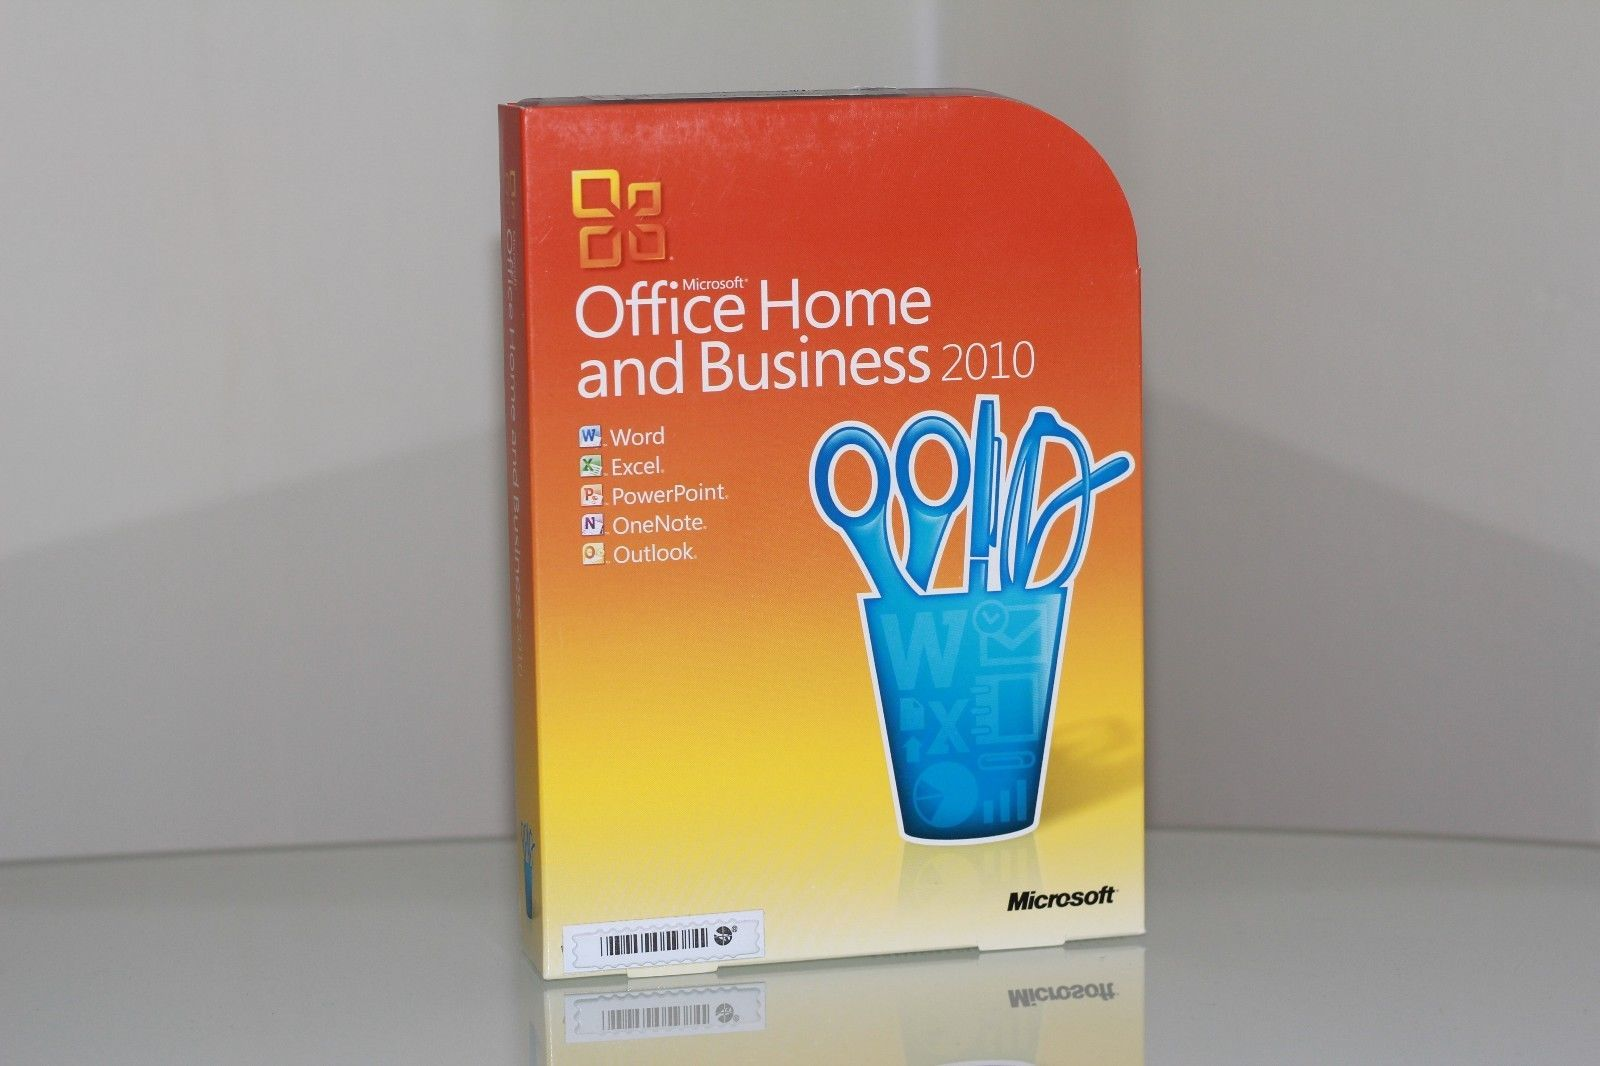 MS Microsoft Office 2010 Home and Business Licensed Full Retail Box